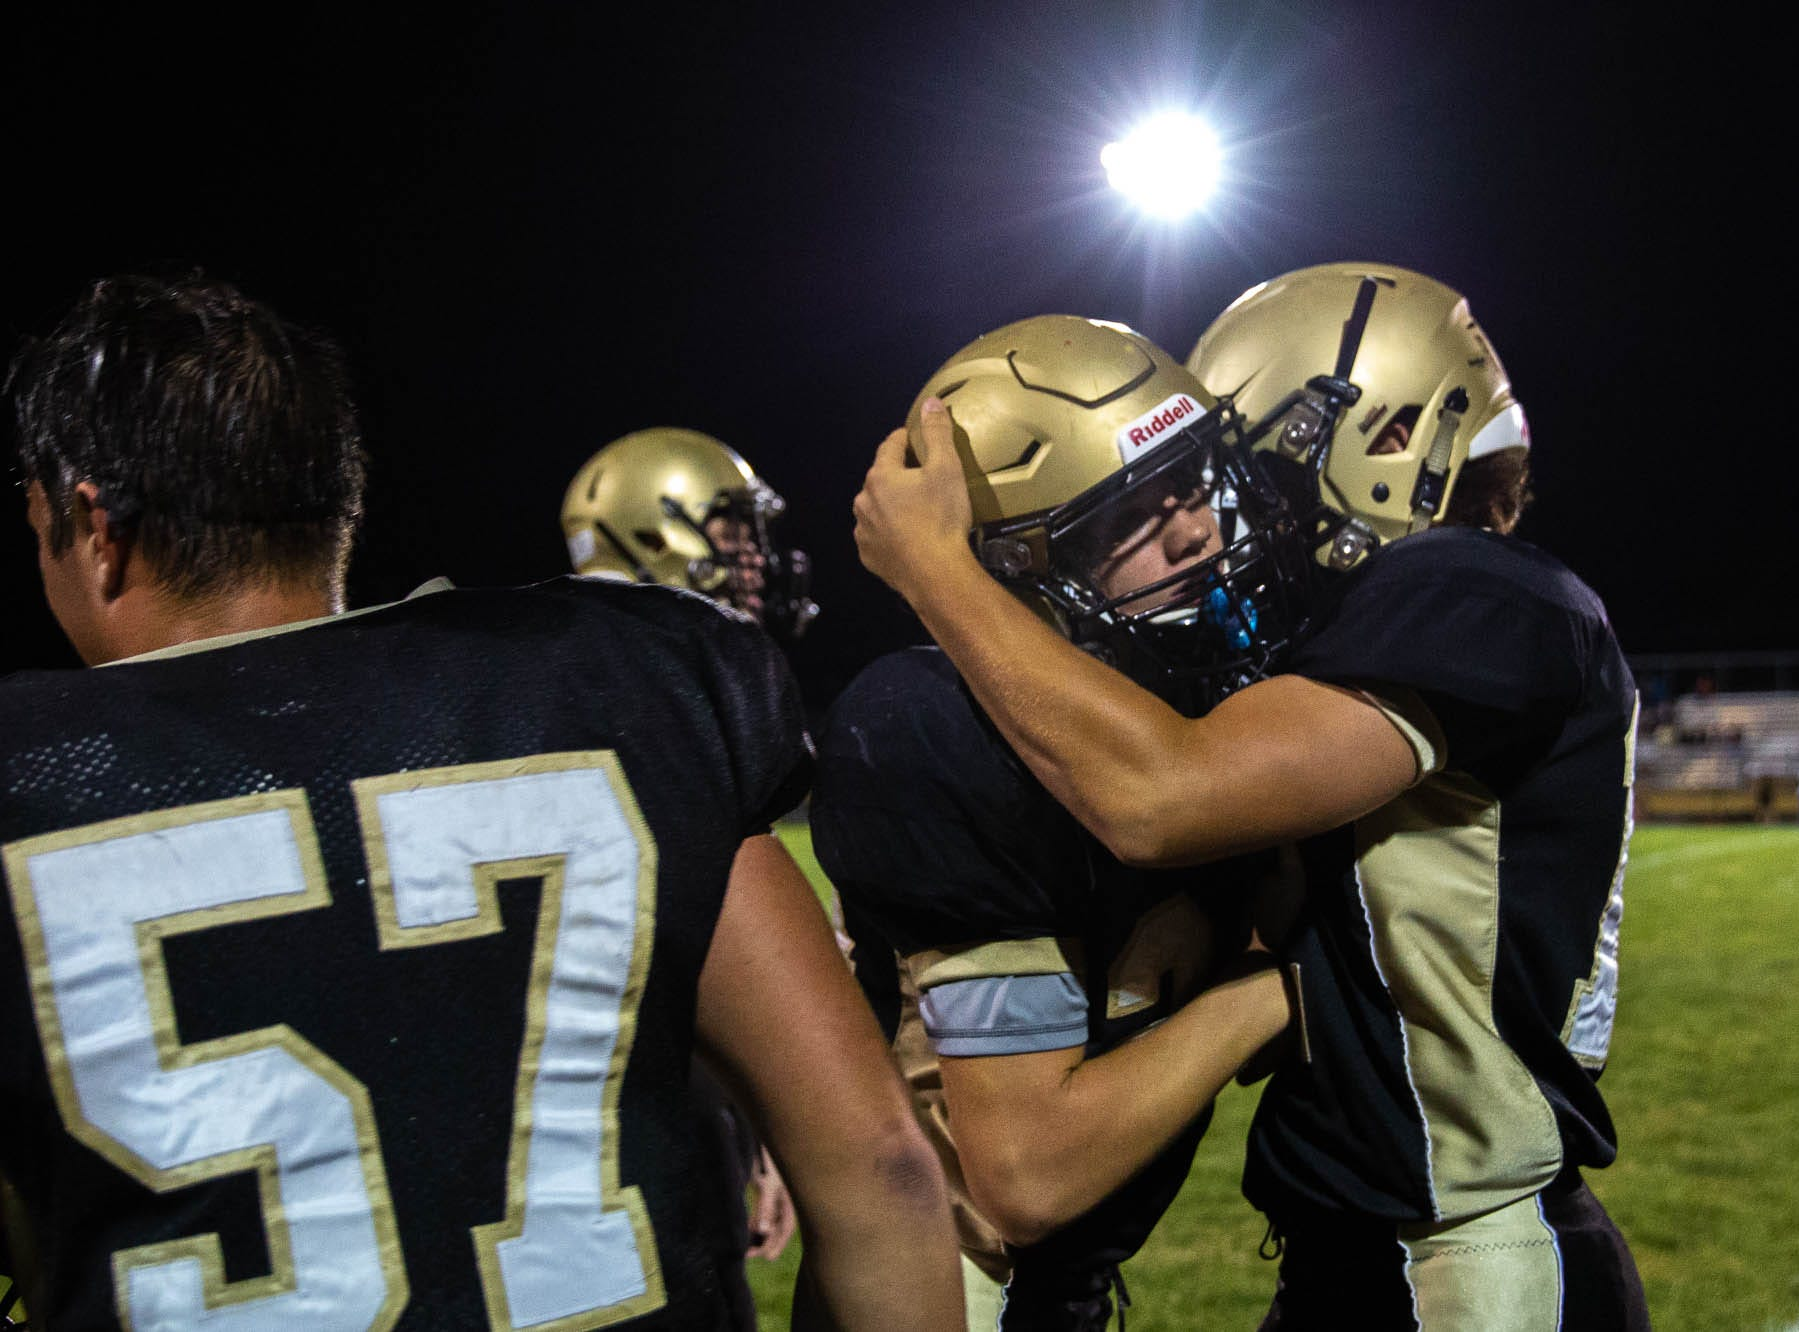 Delone's Tate Neiderer (24) is embraced by Delone's Sam Meighan (12) after Neiderer scored a touchdown during the second half of a football game between Delone Catholic and York Suburban, Friday, Aug. 31, 2018, at Delone Catholic High School in McSherrystown. Delone beat York Suburban 62-0.